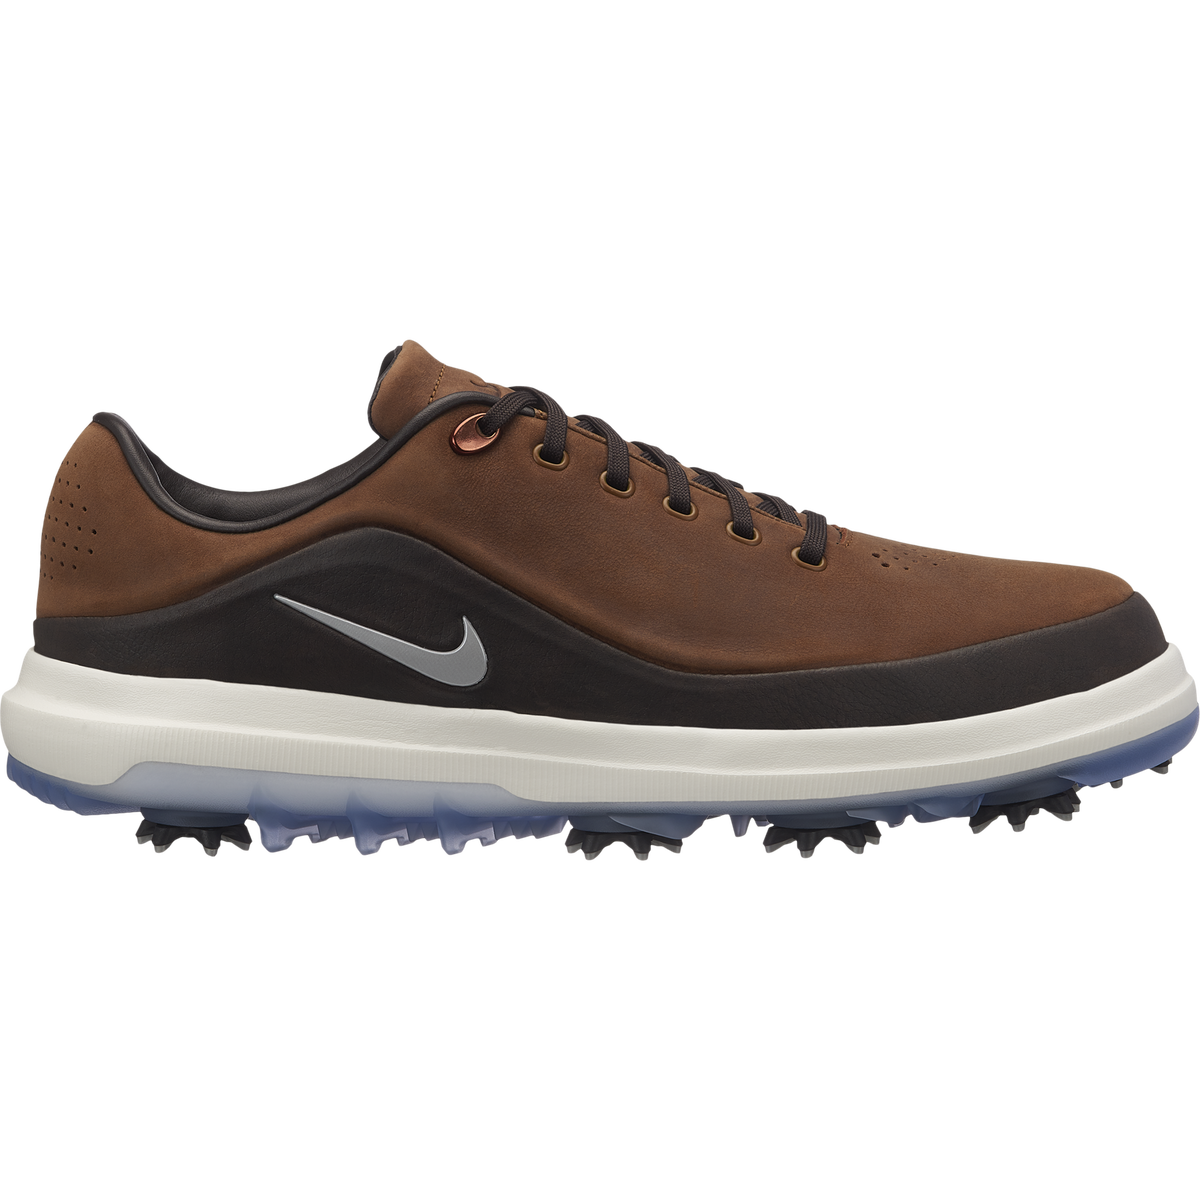 a26686866 Images. Nike Air Zoom Precision Men  39 s Golf Shoe ...